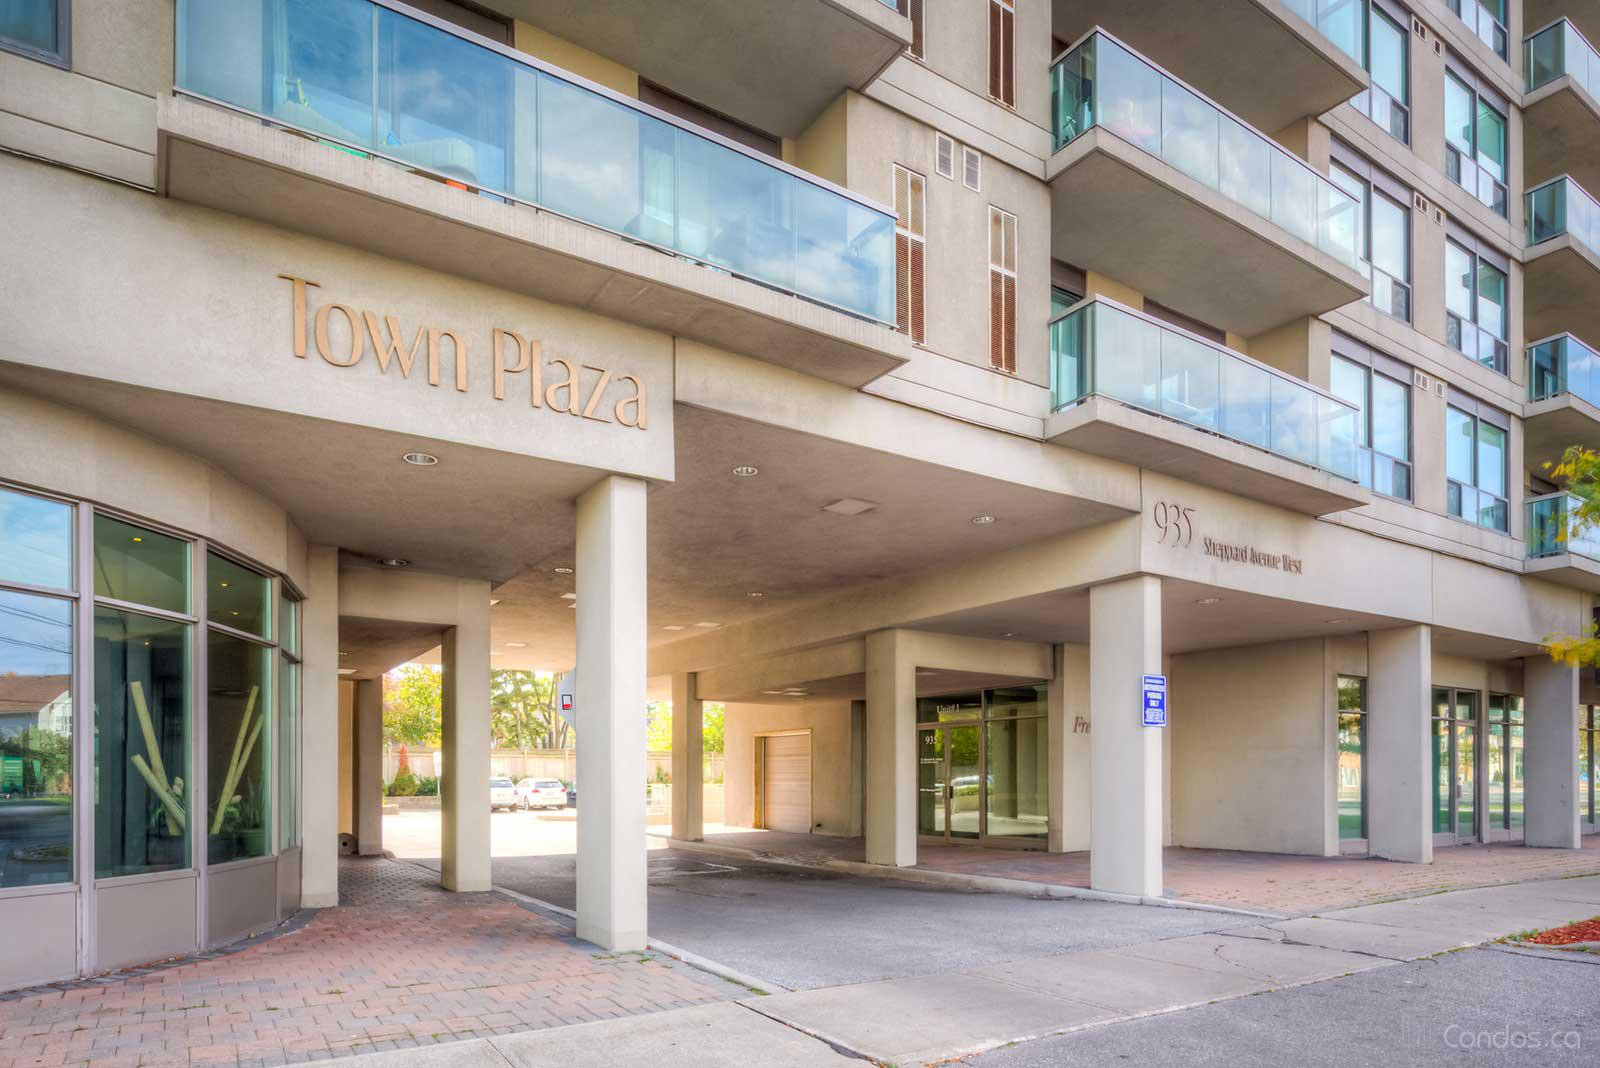 The Town Plaza at 935 Sheppard Ave W, Toronto 1